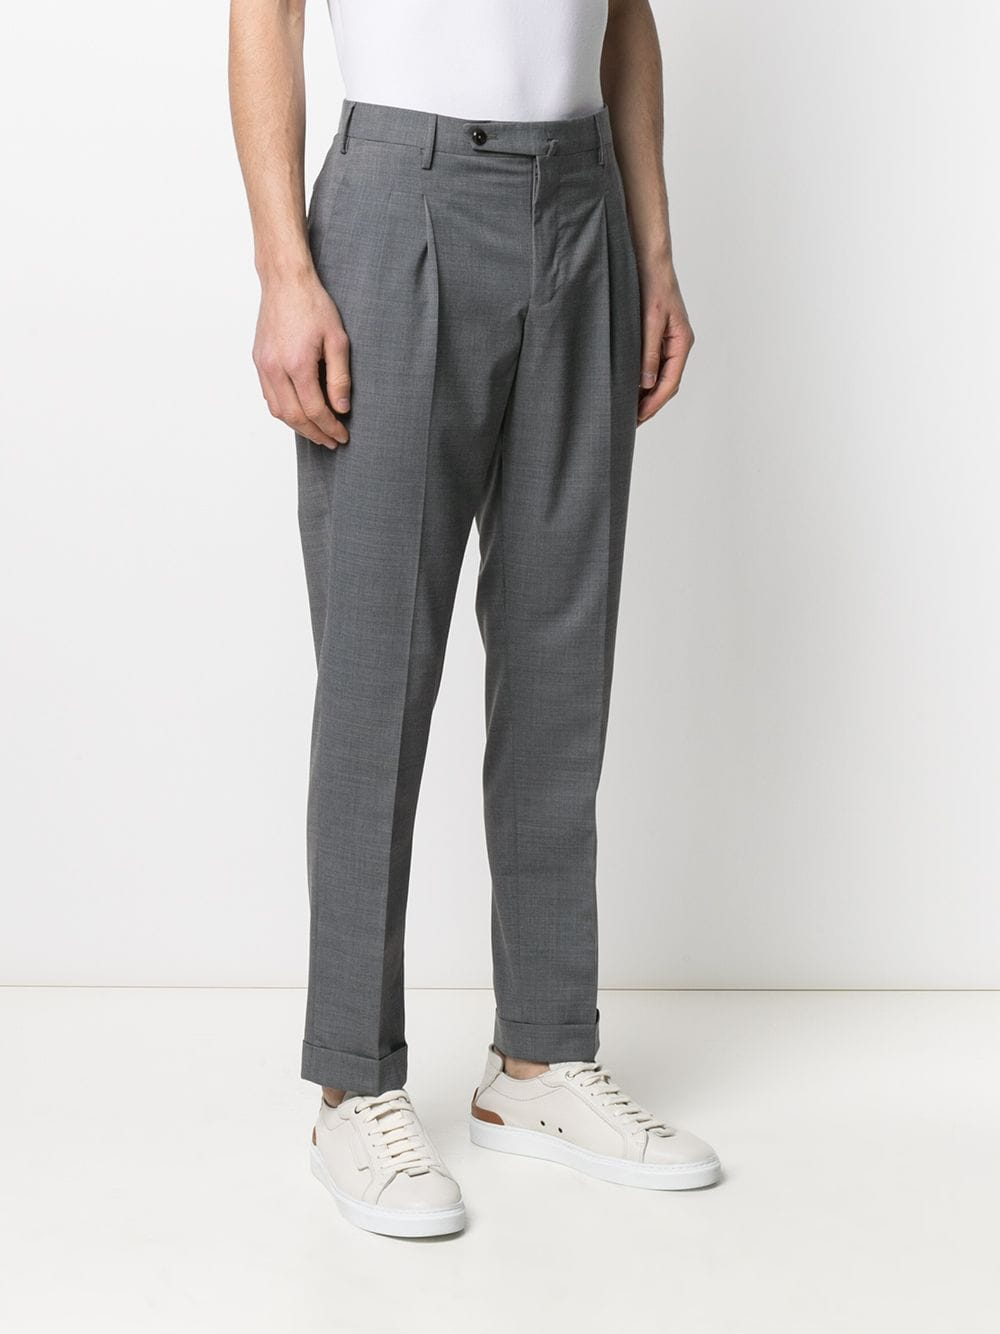 Grey wool inverted pleat trousers  PT01 |  | COHS22ZS0CUB-MZ650230